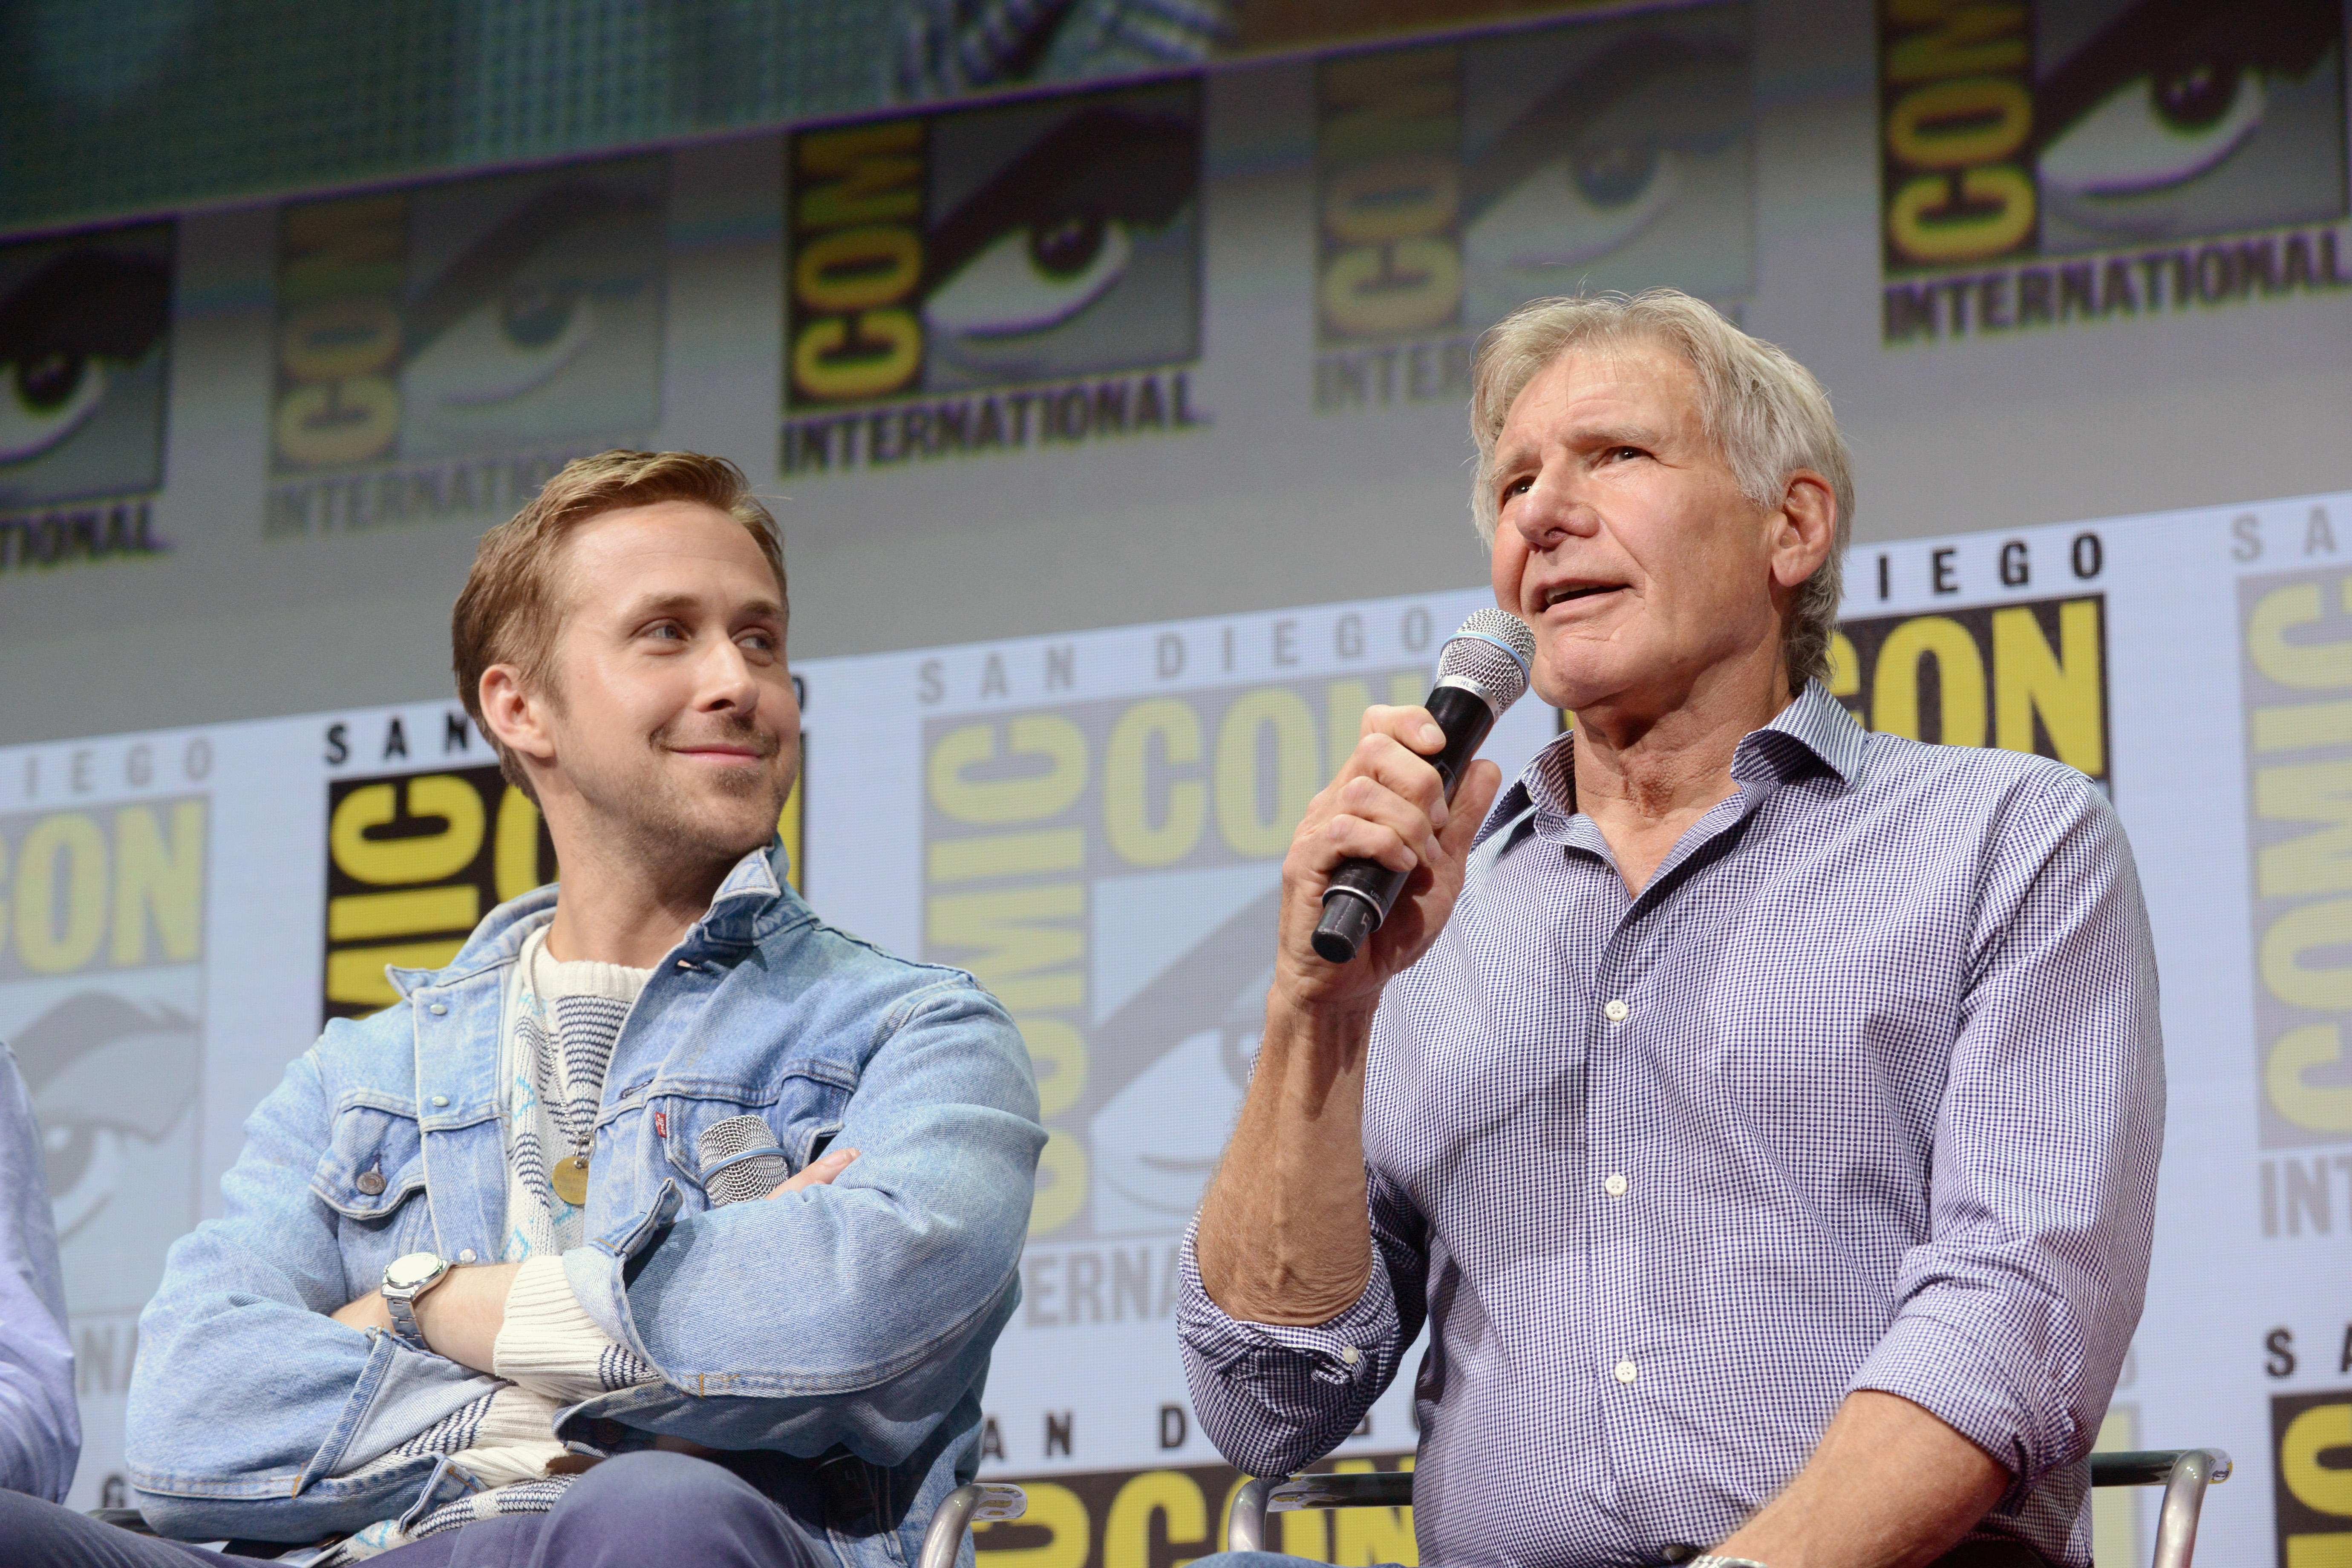 Actors Ryan Gosling (L) and Harrison Ford attend the Warner Bros. Pictures  Blade Runner 2049  Presentation during Comic-Con International 2017 at San Diego Convention Center.